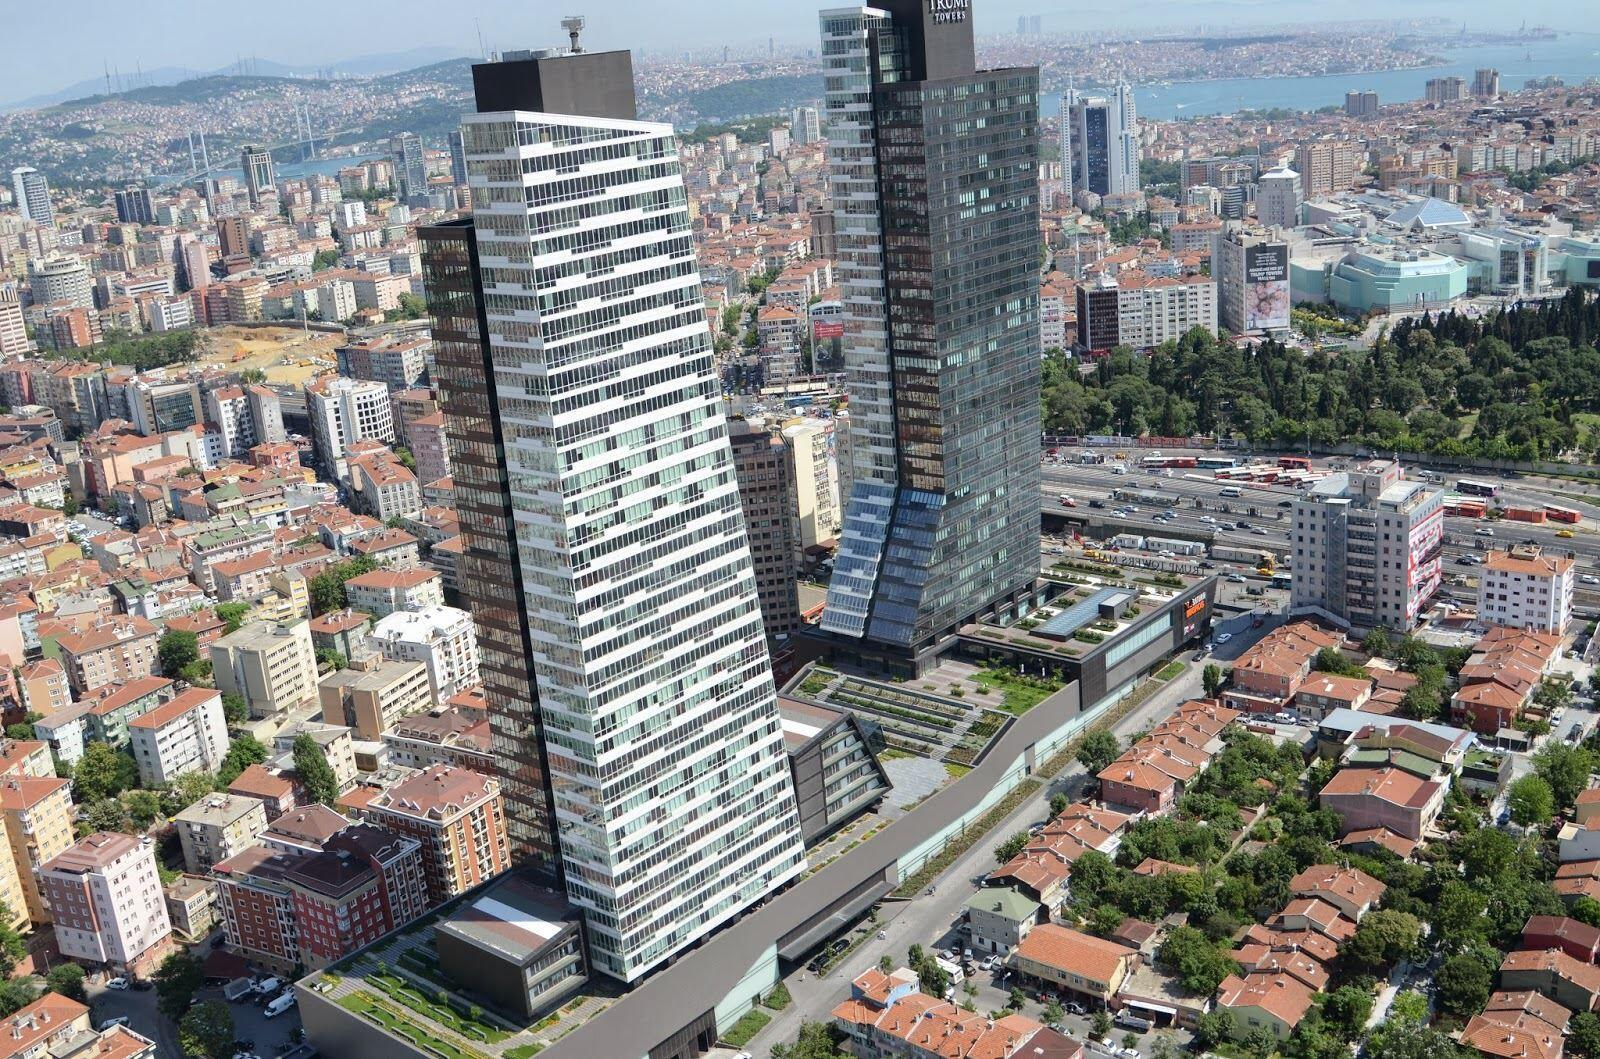 Trump Towers in Istanbul, Turkey